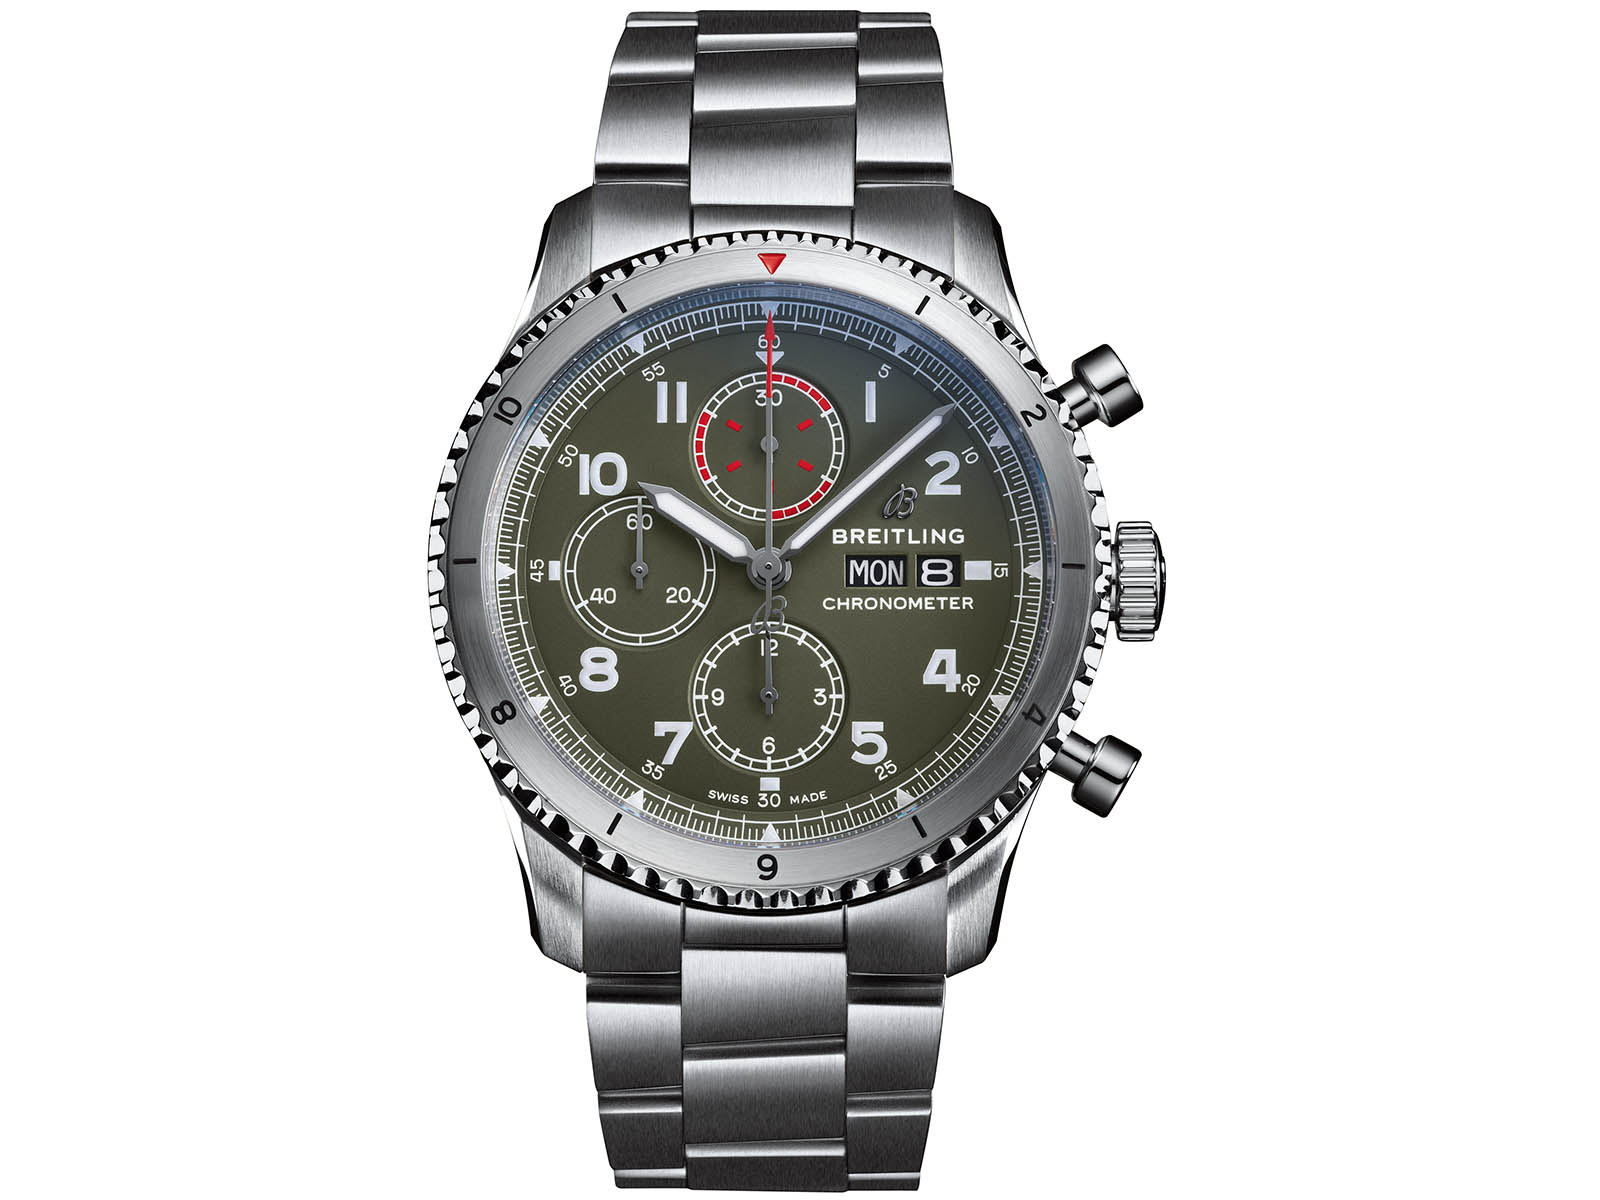 a13316-breitling-aviator-8-chronograph-43-curtiss-warhawk-4.jpg